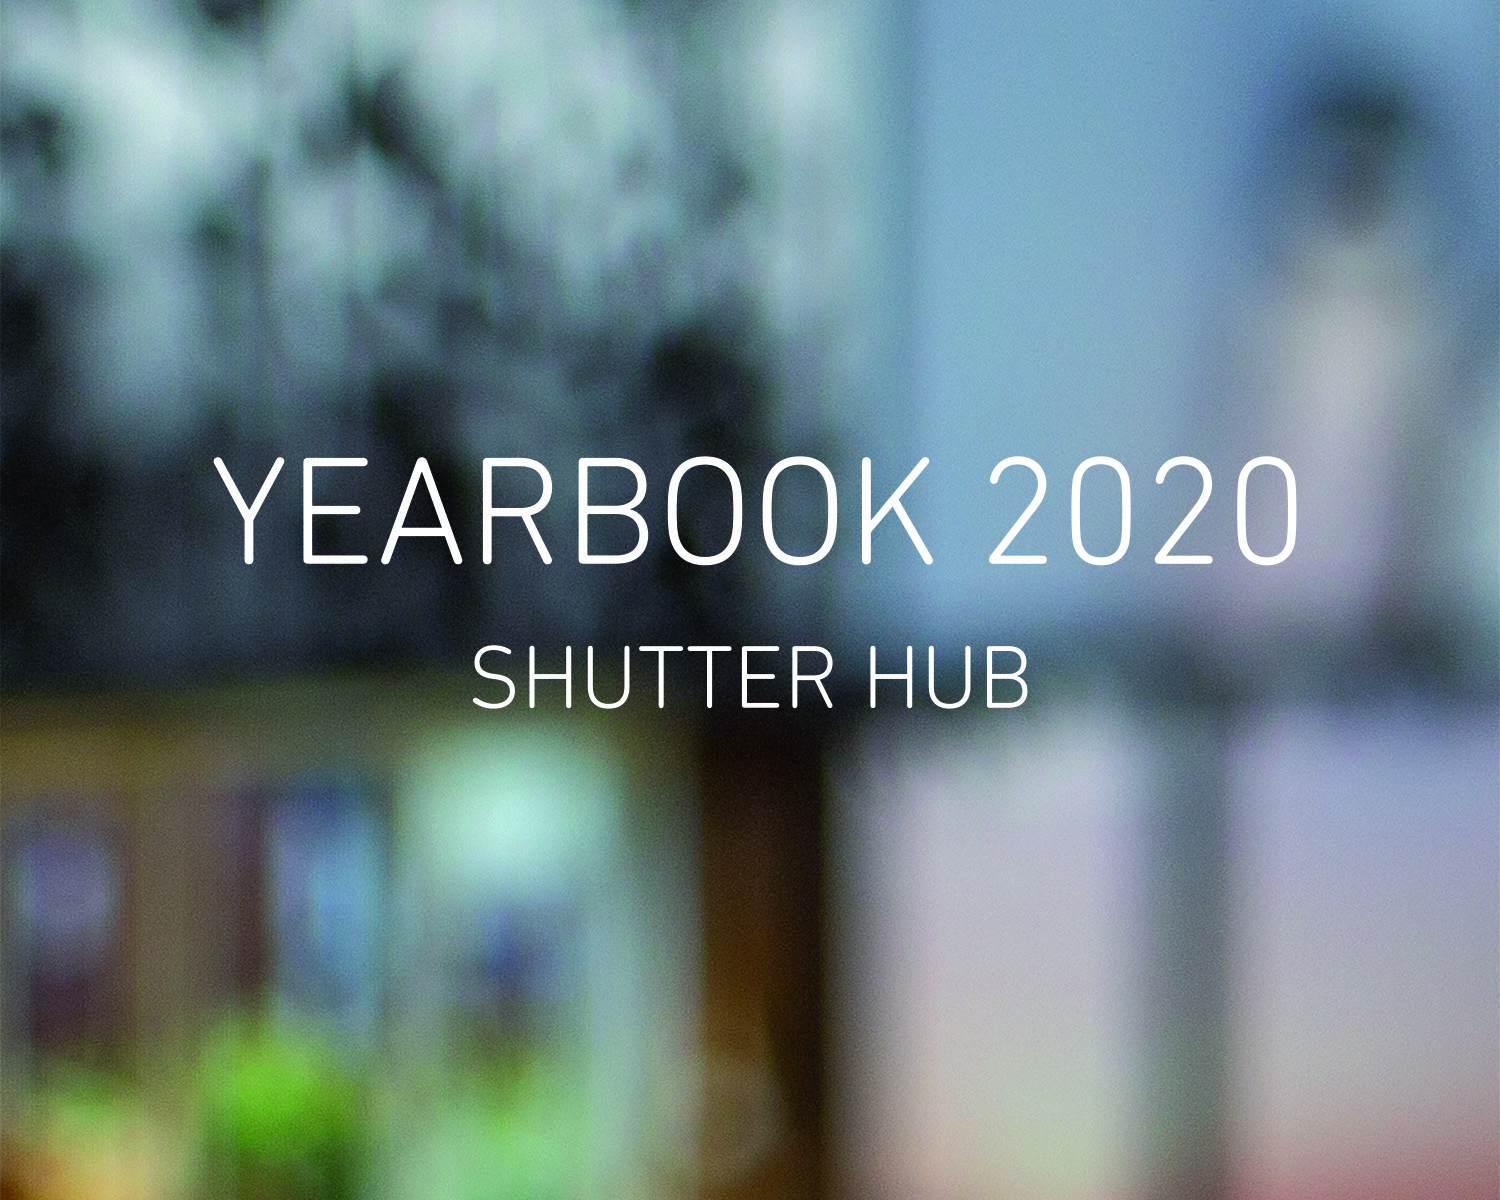 Text ready 'YEARBOOK 2020, SHUTTER HUB' on a background of an out of focus photograph of a screen showing an online exhibition.